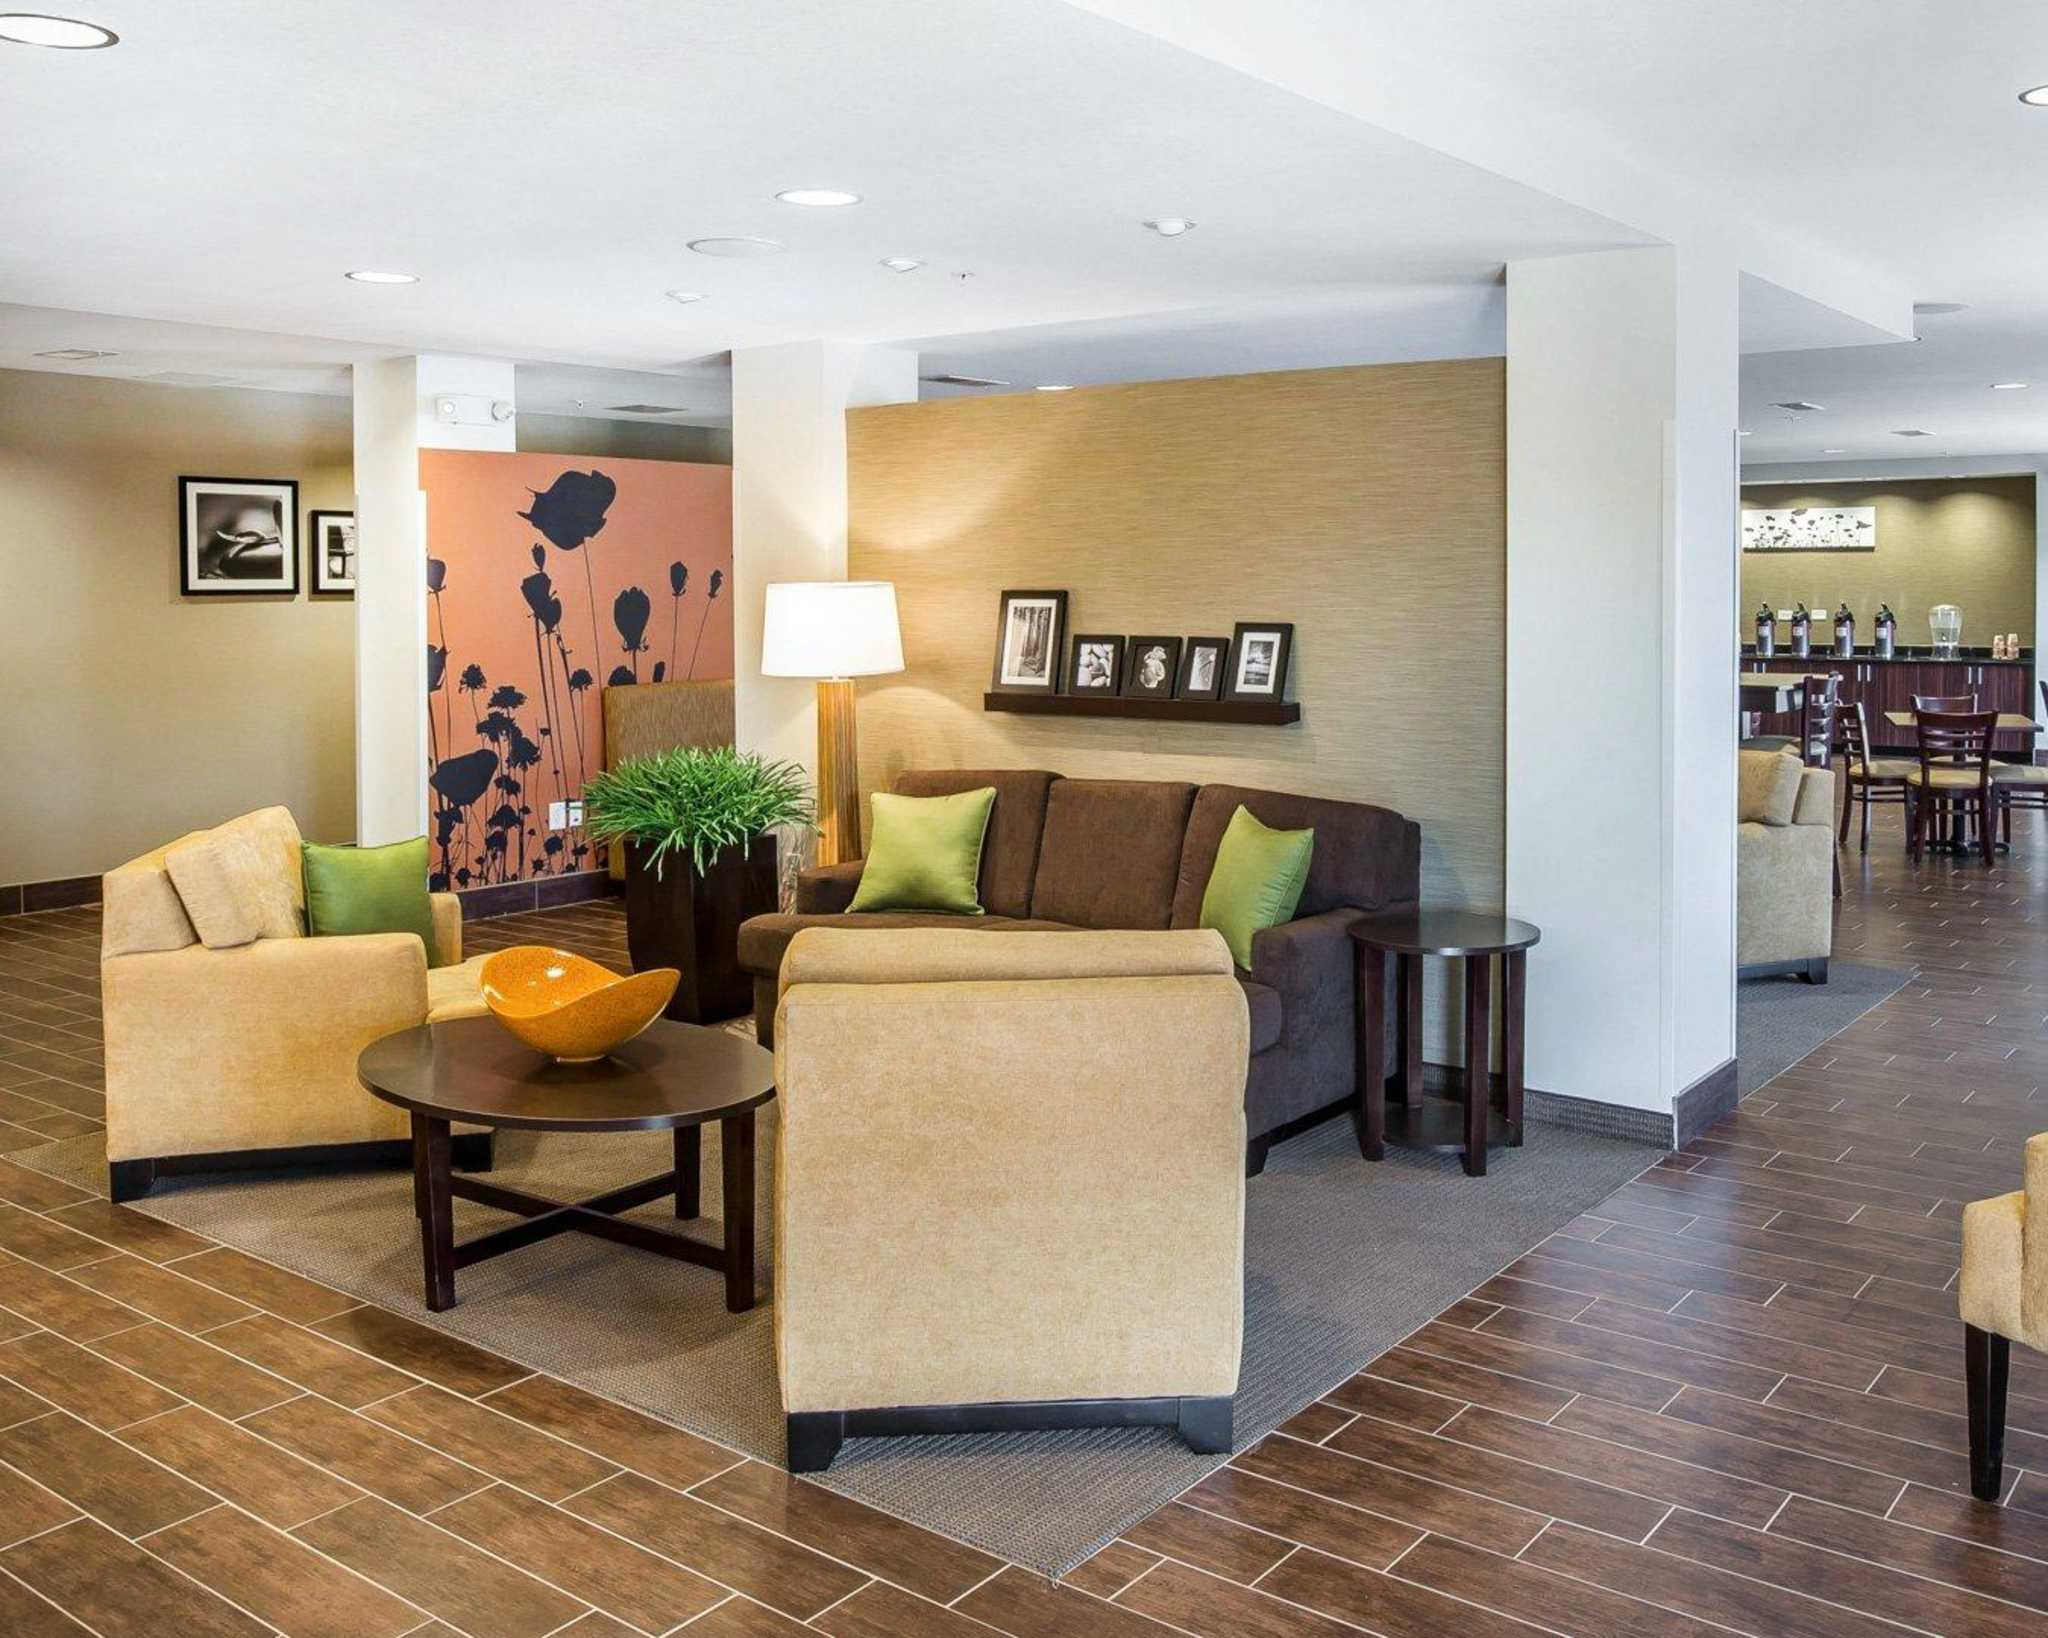 MainStay Suites Cartersville - Emerson Lake Point image 7